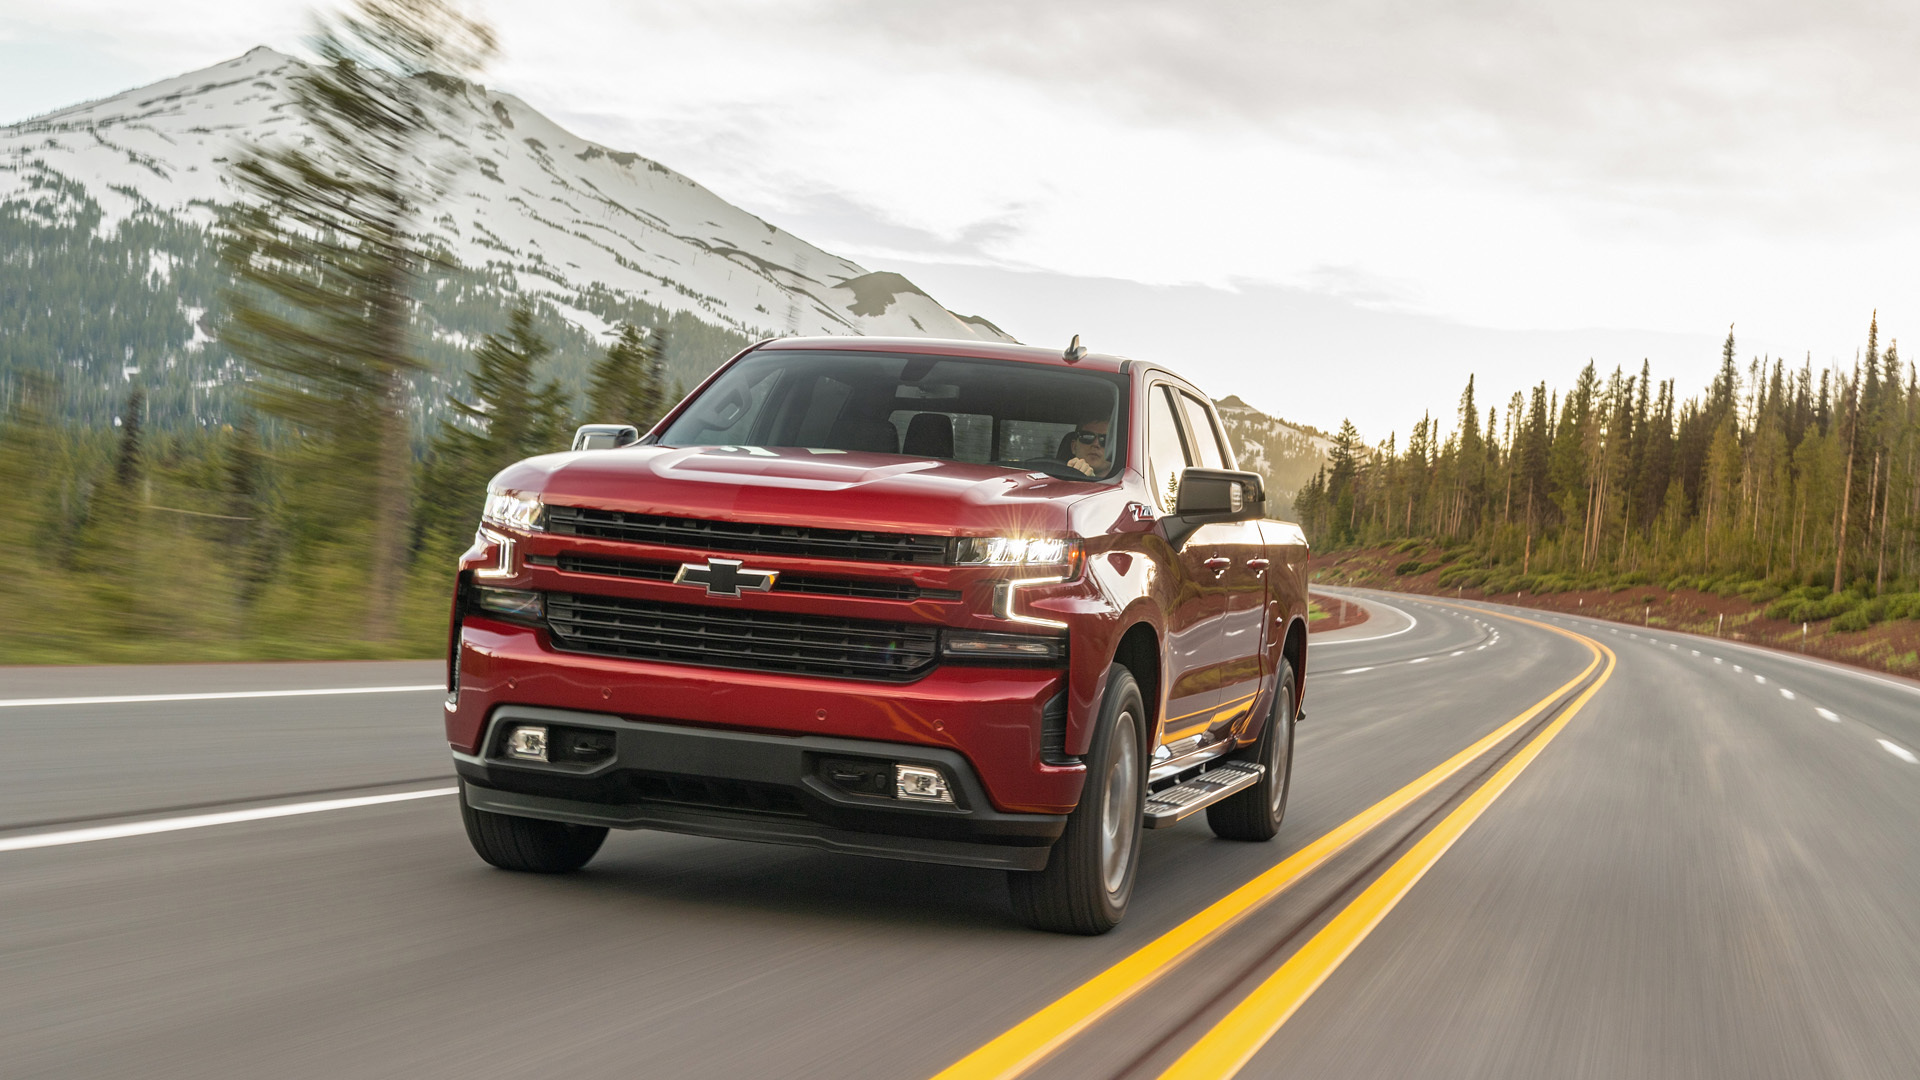 2020 Chevrolet Silverado 1500 Duramax First Drive Review ...